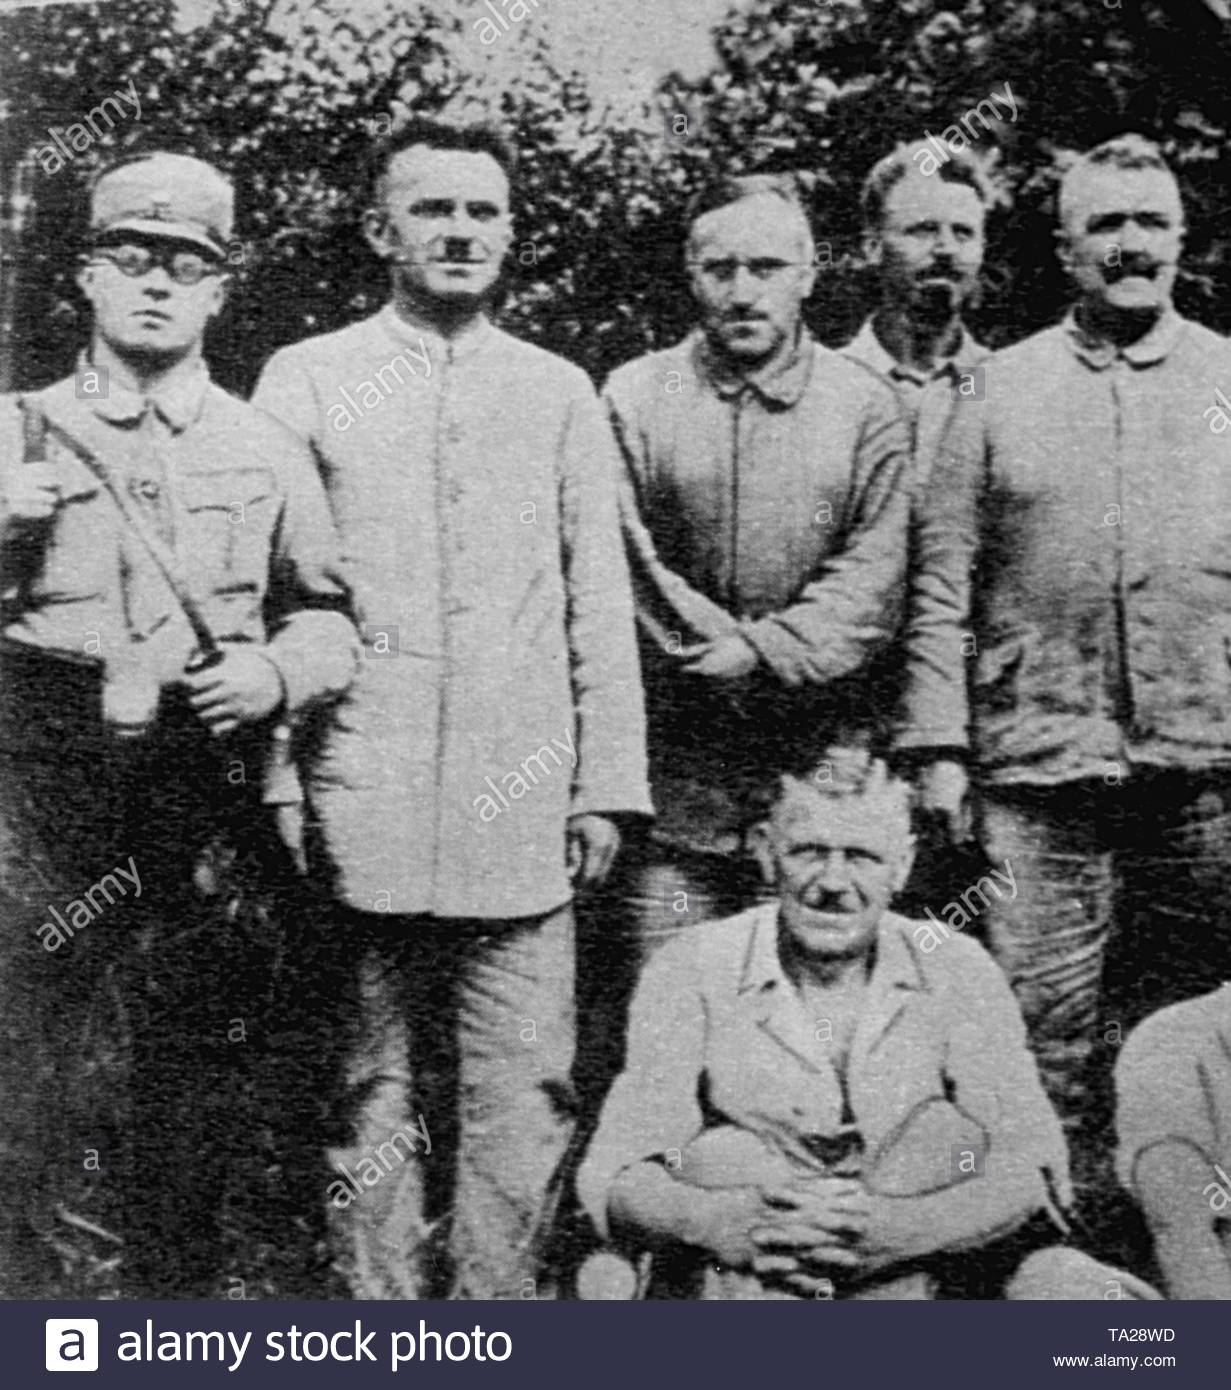 Carl von Ossietzky (3rd from left) in the Sonnenburg concentration camp. In 1936 he received the Nobel Peace Prize for 1935, which he was not allowed to accept. - Stock Image